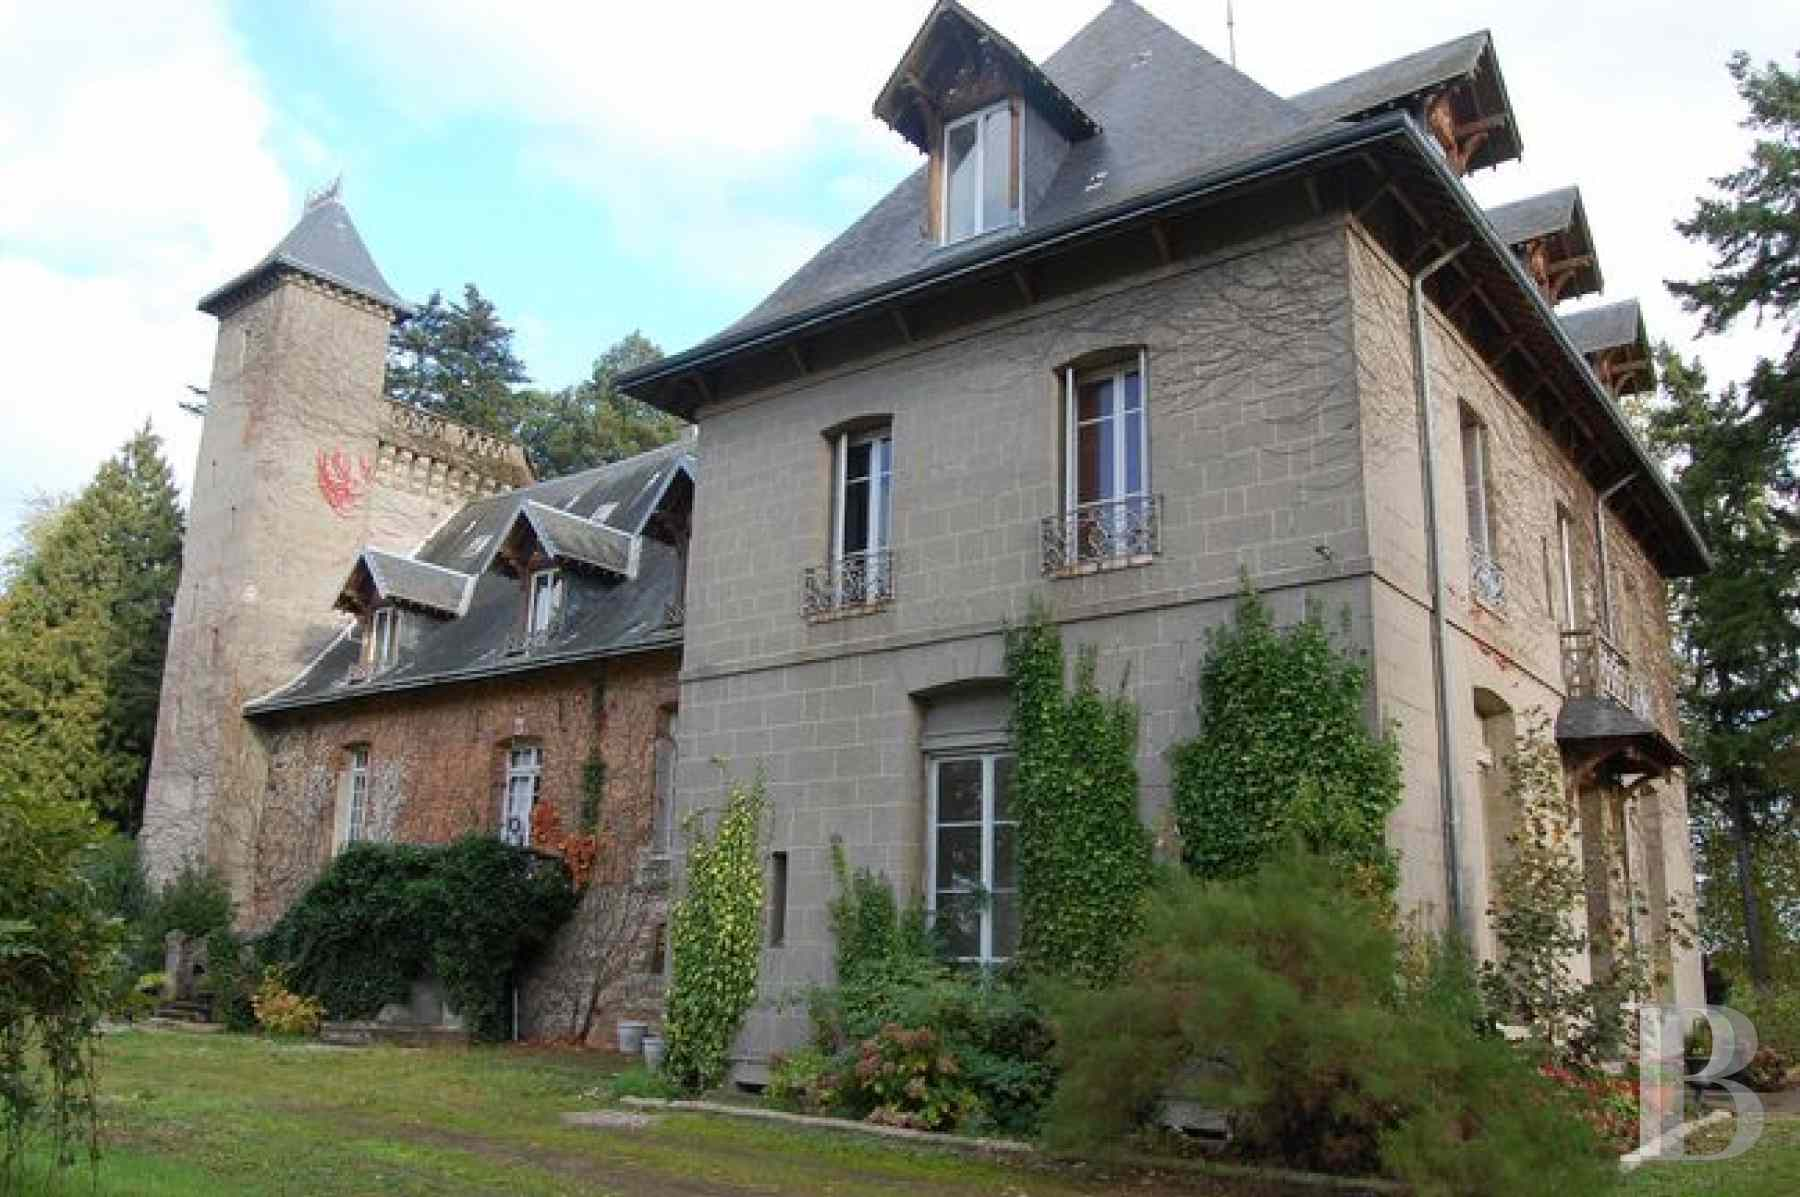 France mansions for sale upper normandy manors for - 2 zoom